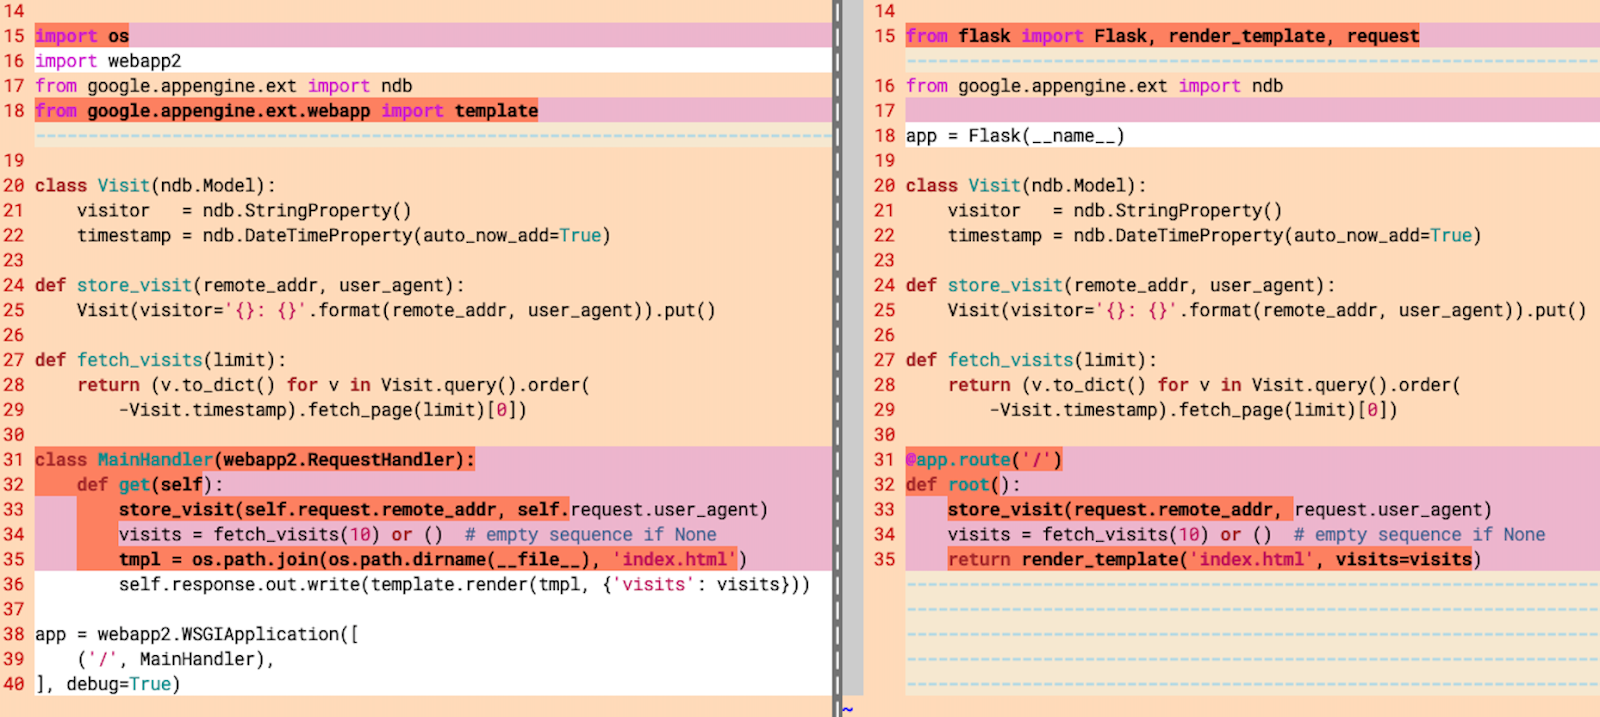 The diffs between the webapp2 and Flask versions of the sample app